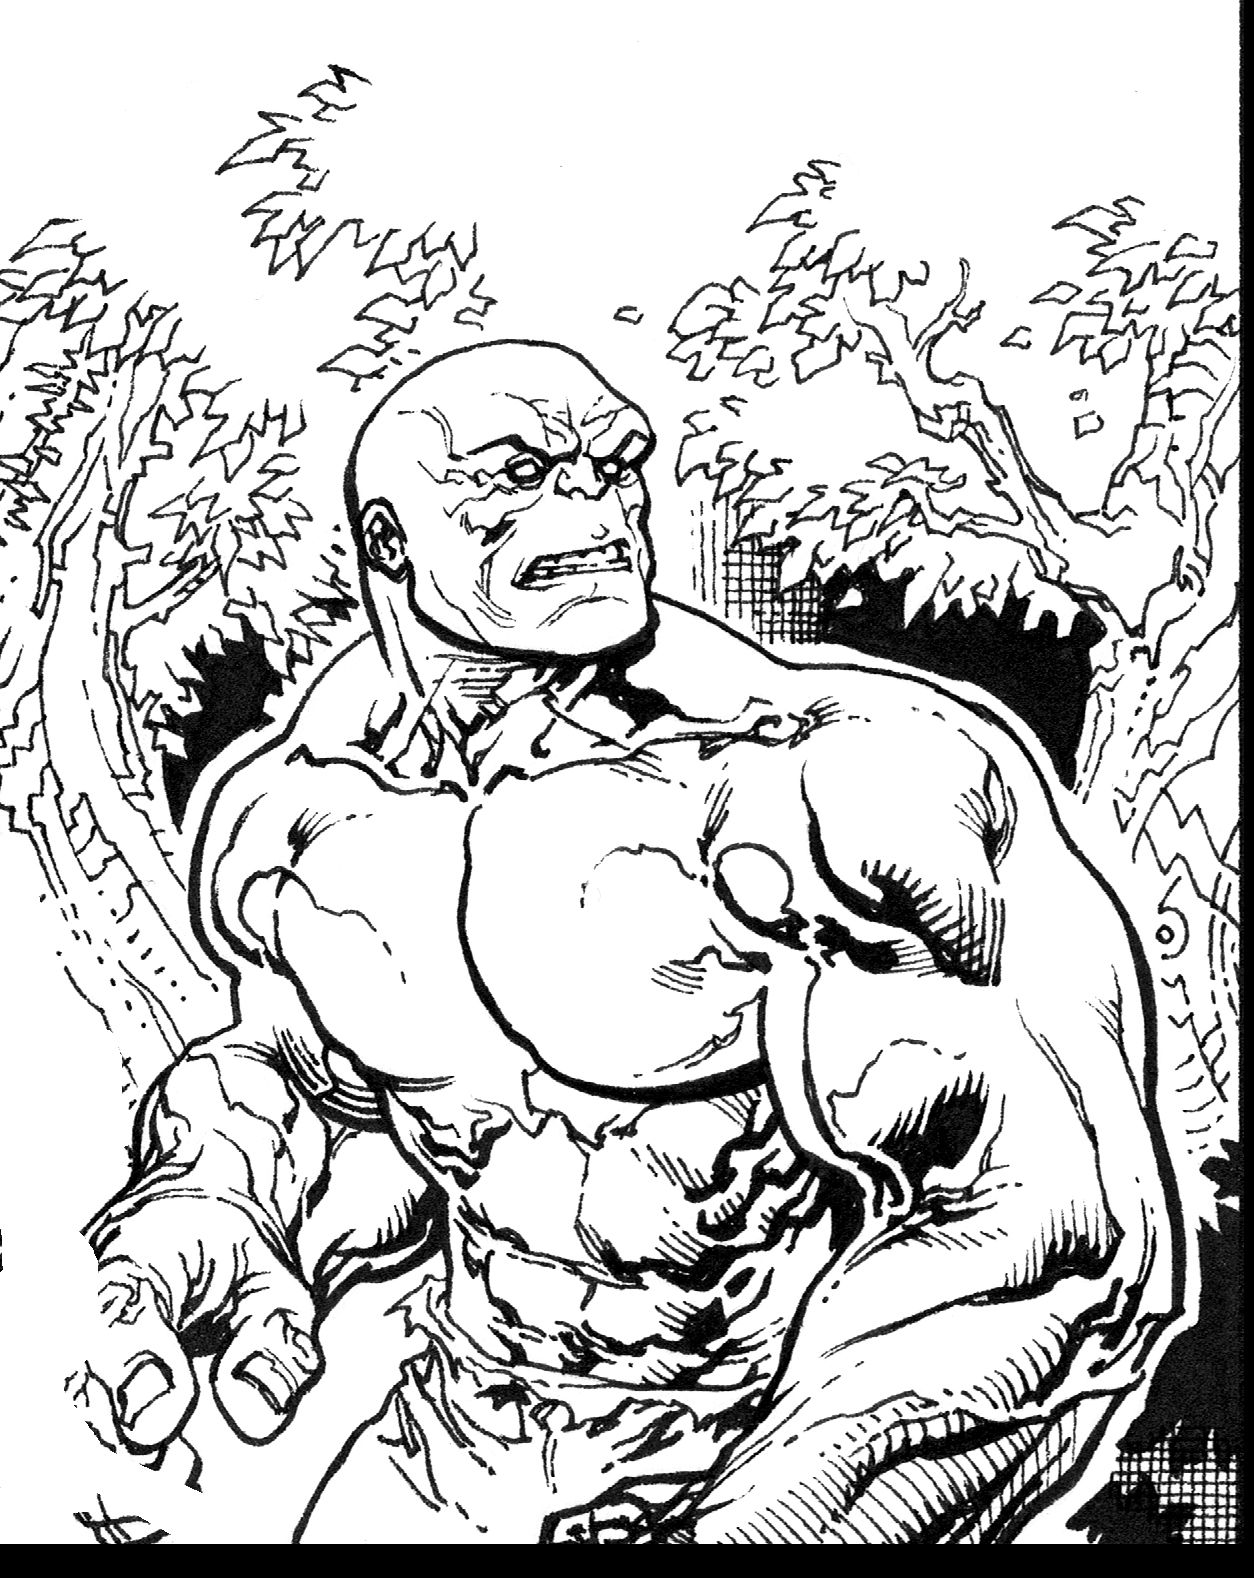 Incredible Hulk preview by TomRaney on DeviantArt